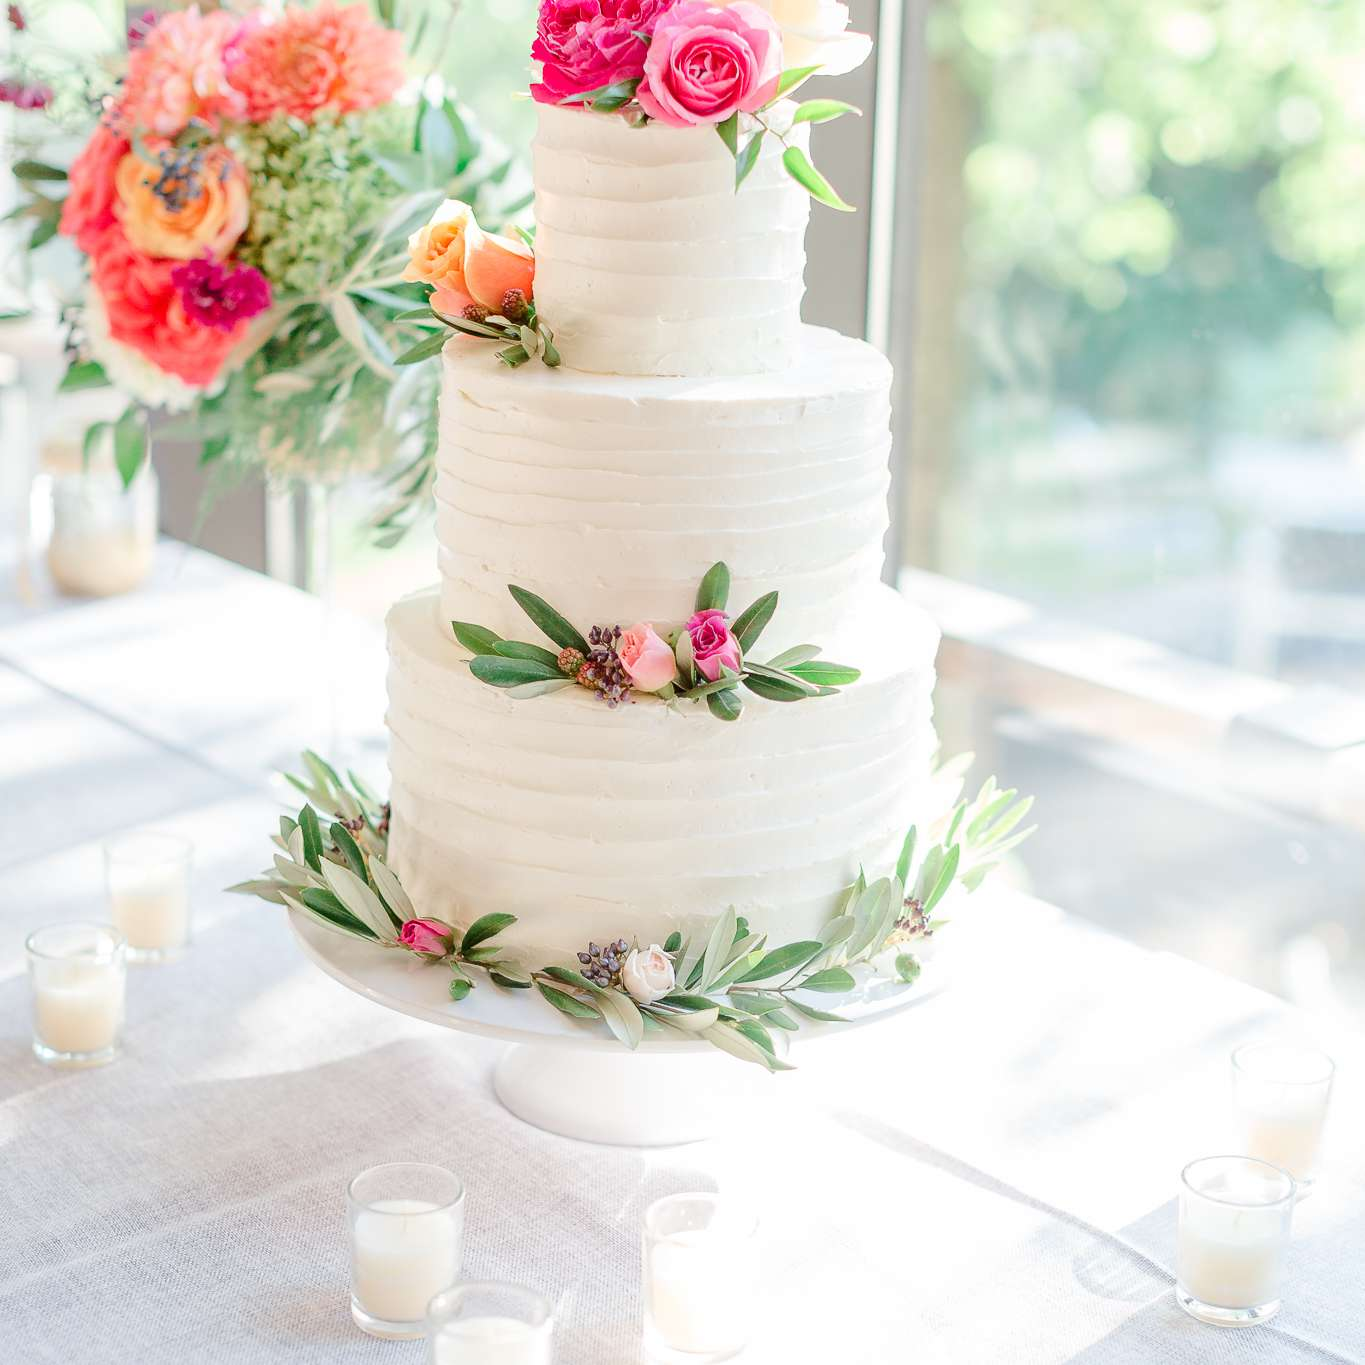 Three-Tiered White Wedding Cake with Pink Roses